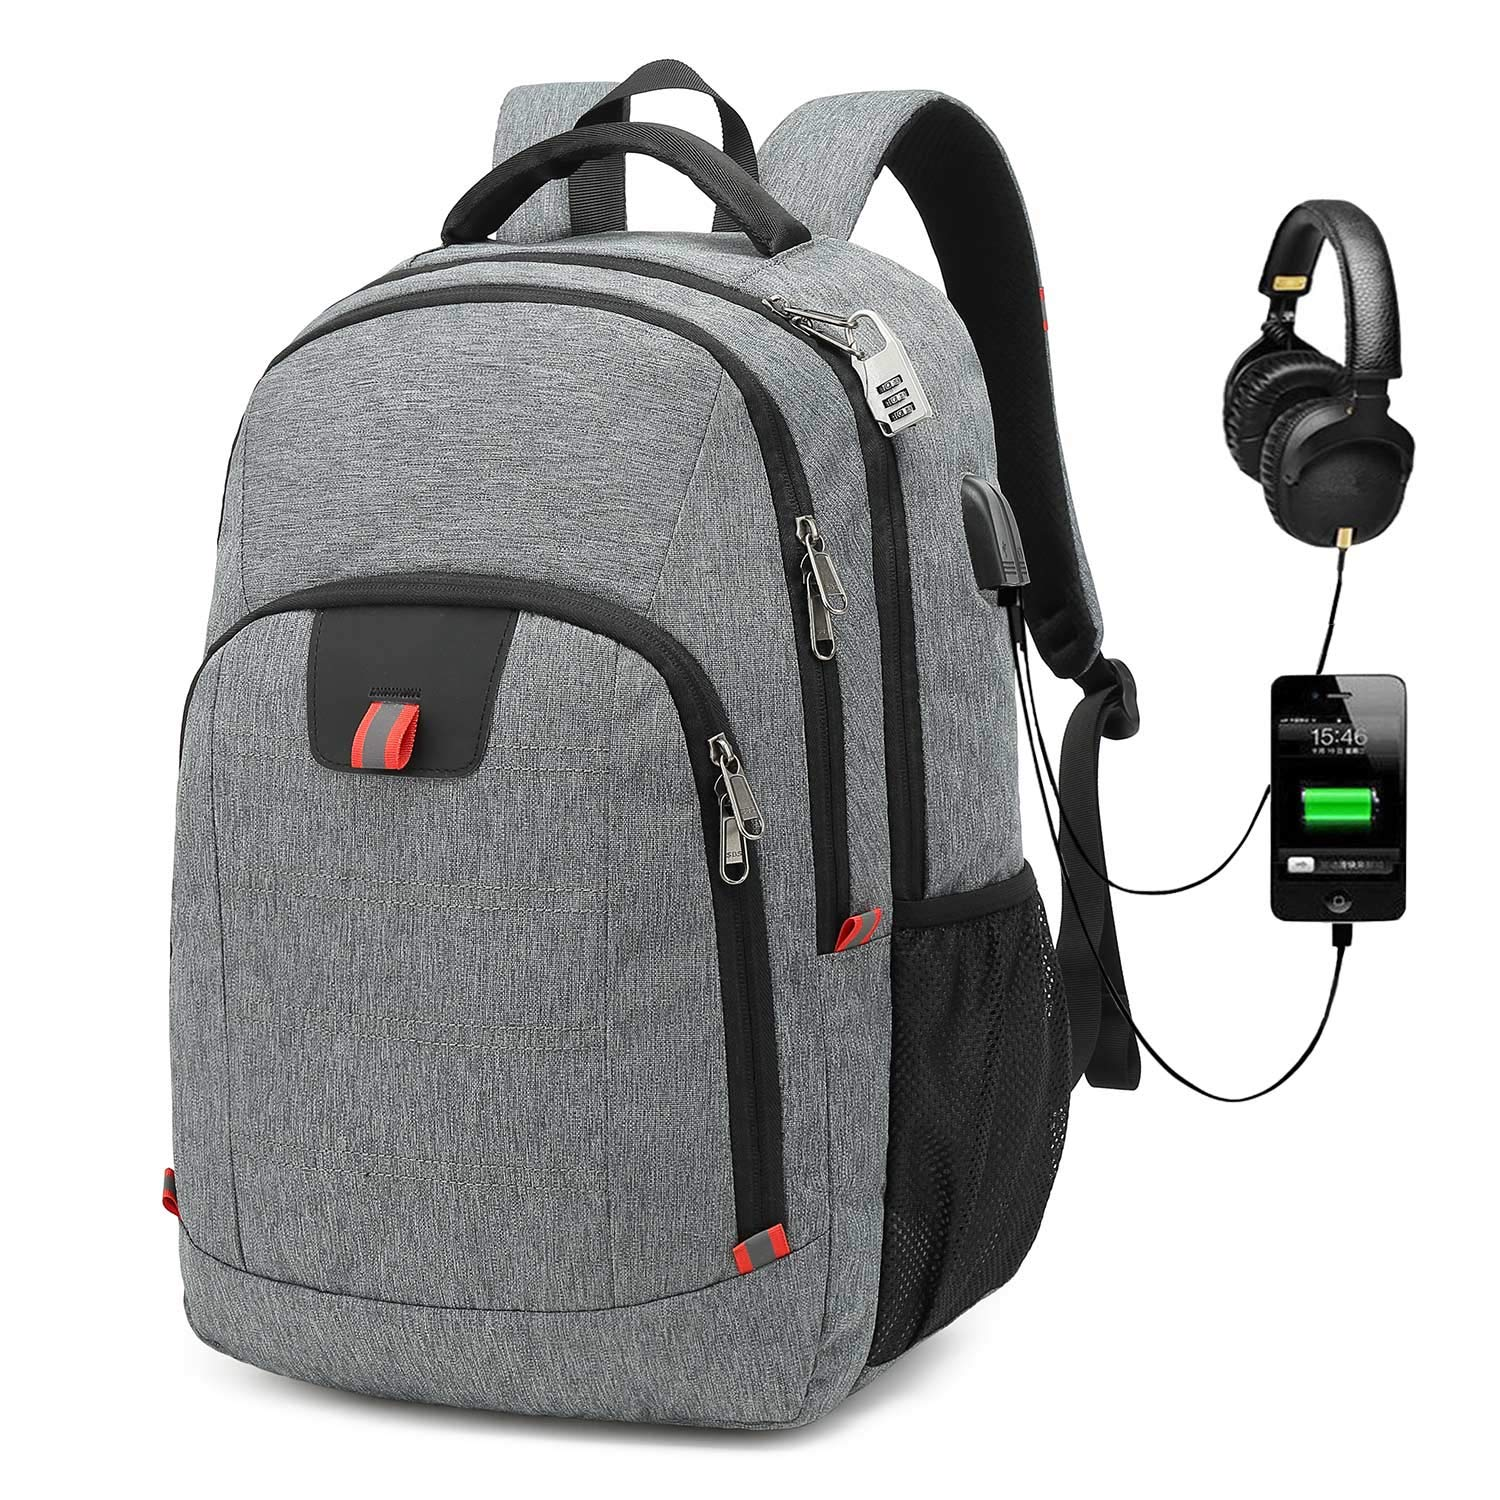 G-raphy Travel Backpack Waterproof for Laptops up to 17-inches with USB Charging Port Grey